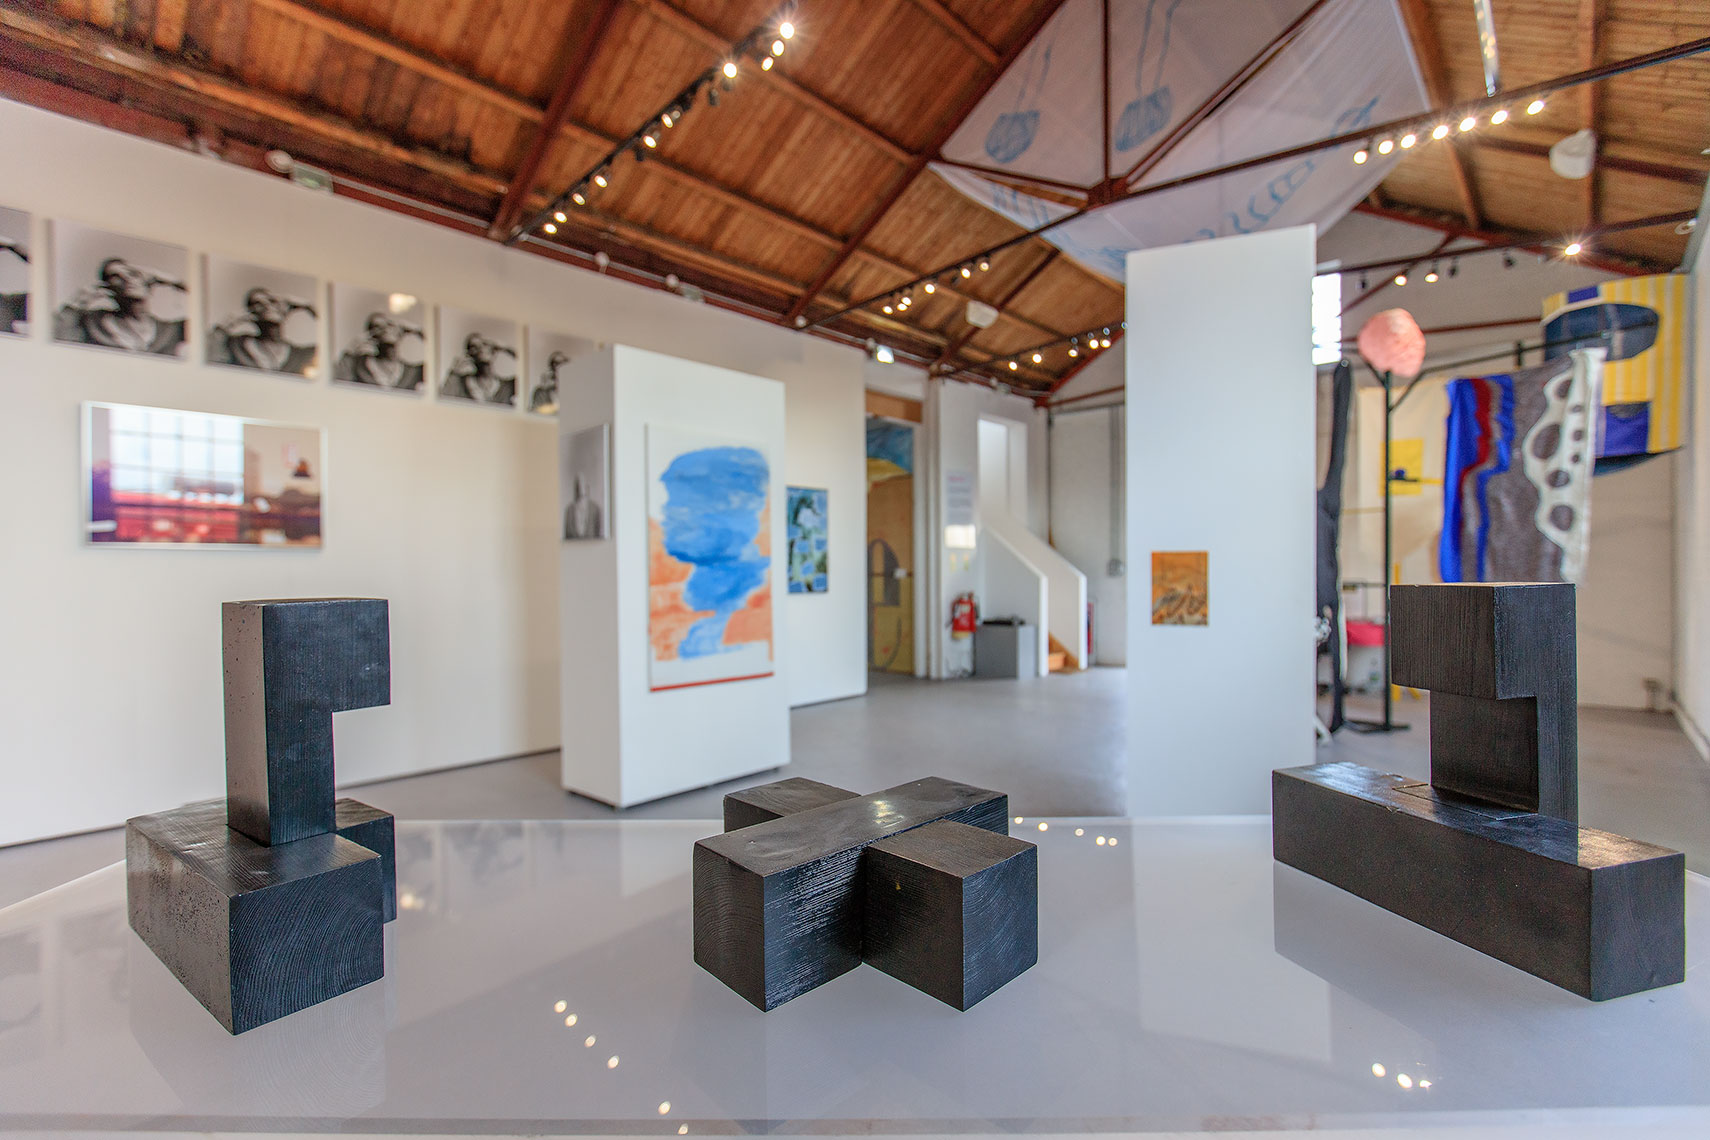 Fine art works on display at a large open plan interior gallery space in Kent